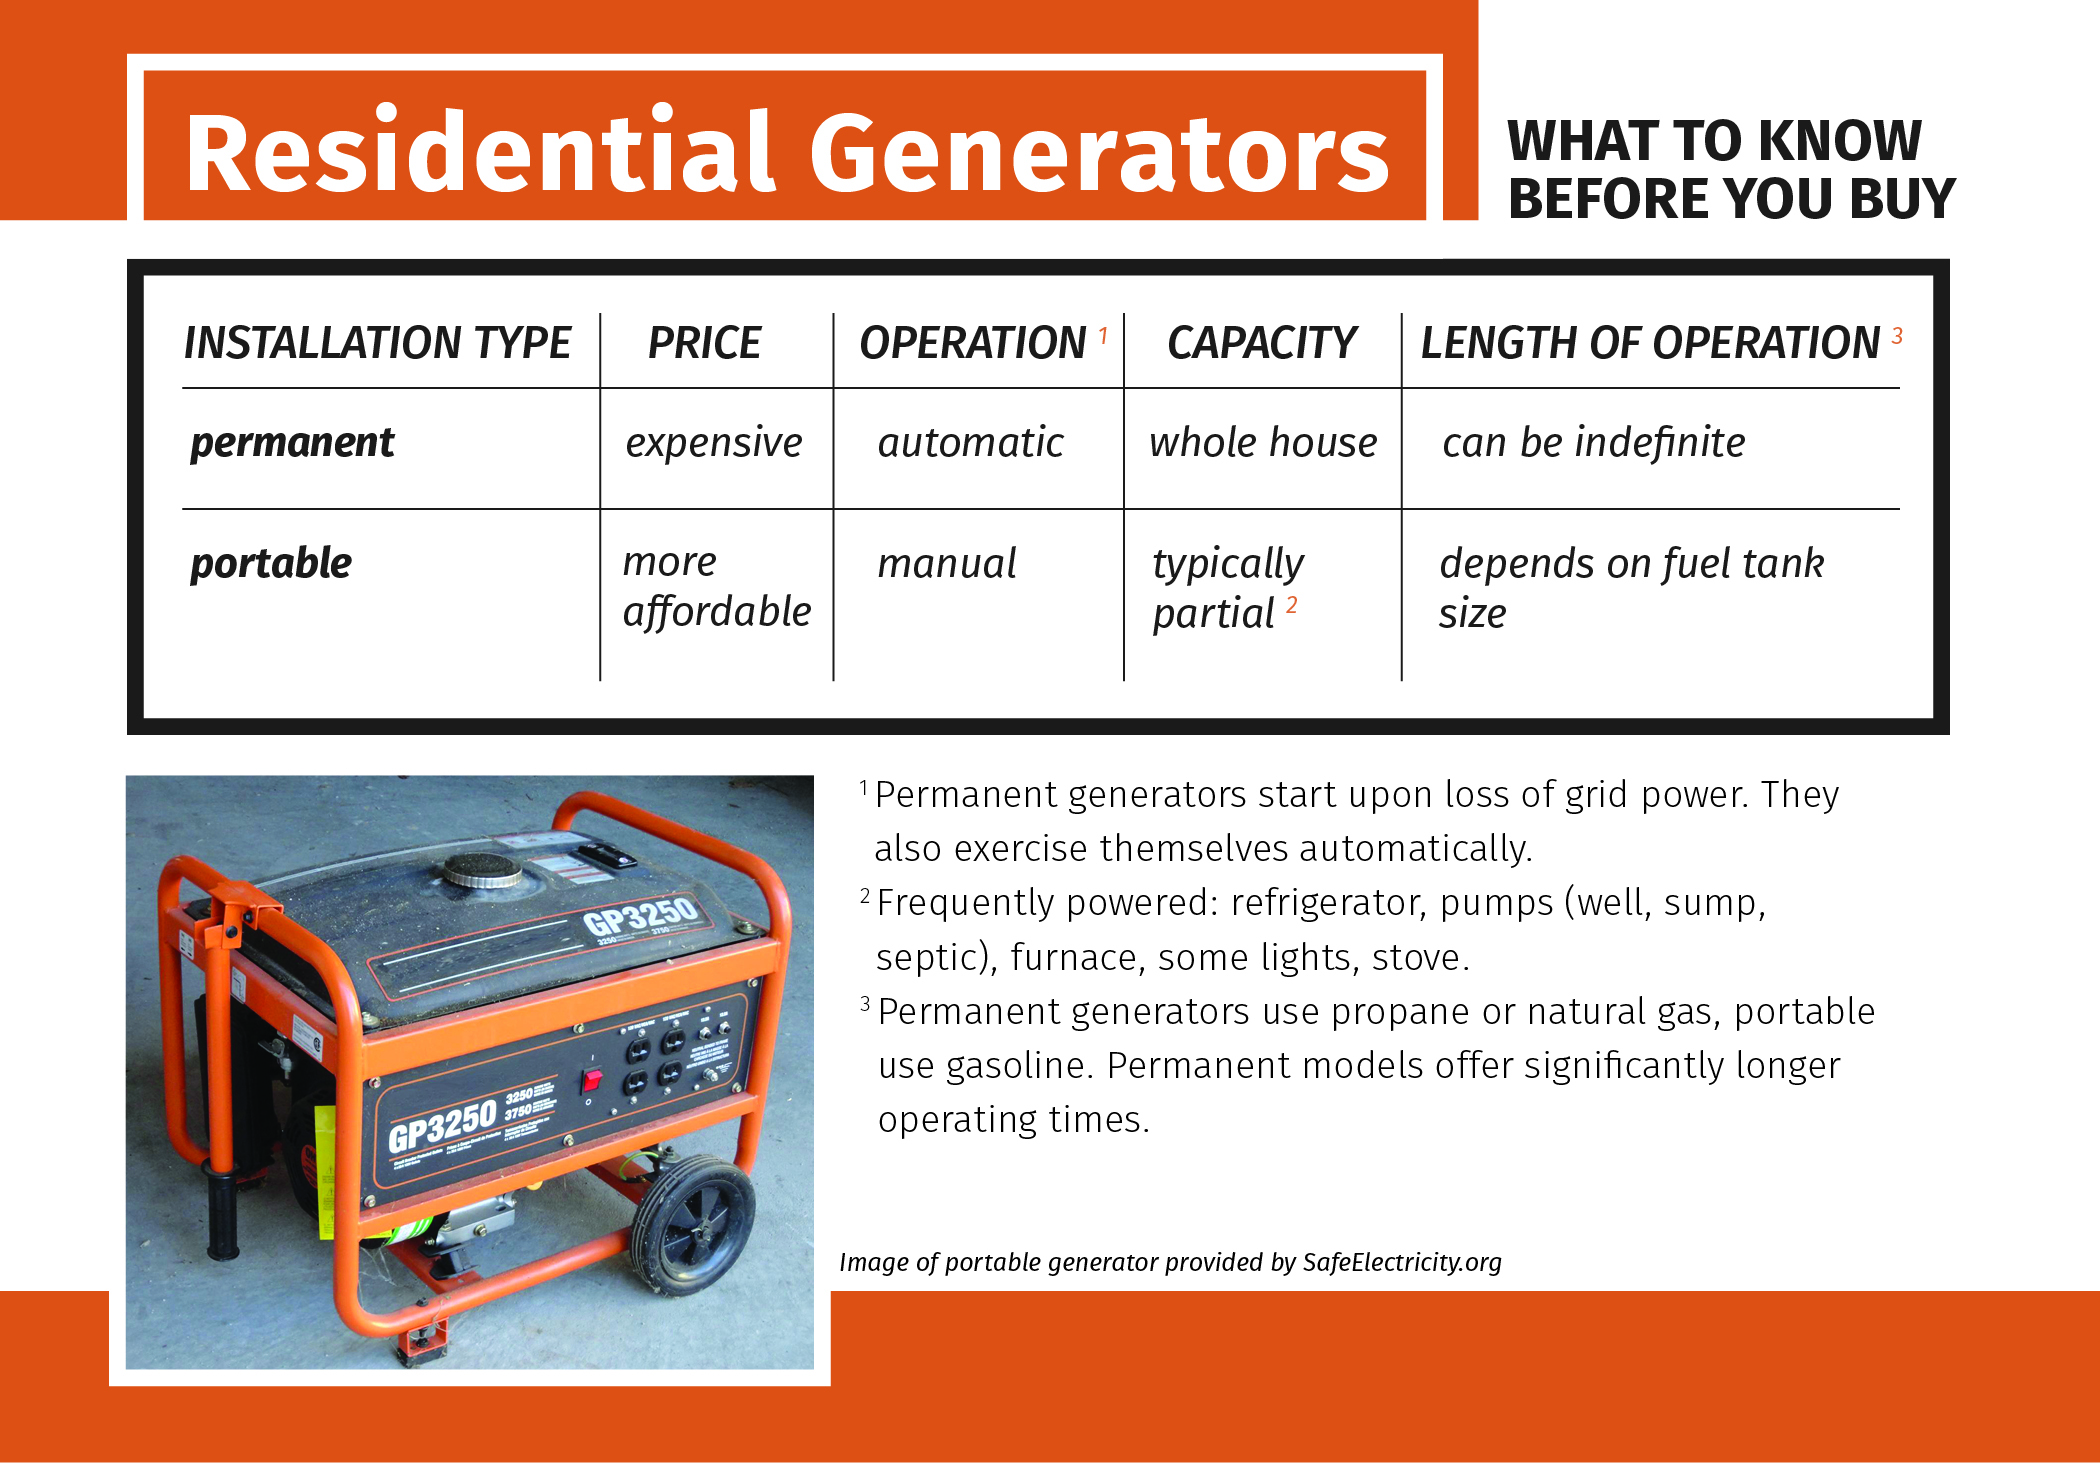 Generator Information Home Wiring Safety Of Your Family During Outages And Safeguard Those Who Come To Aid Emergency Situations When We Work Together For The